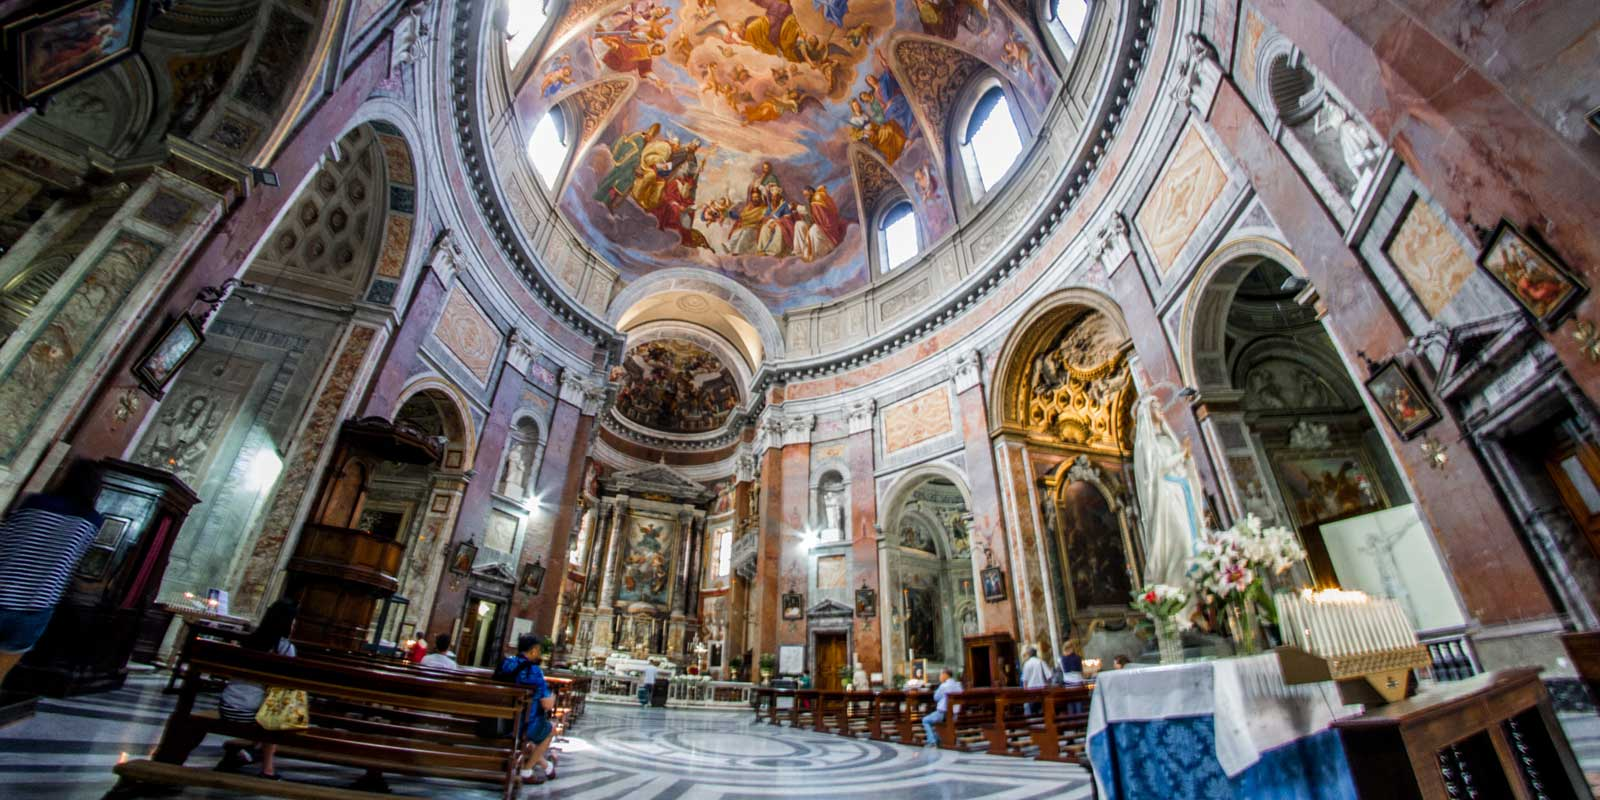 10 Must See Churches in Rome; How To Find Them, What to Look For